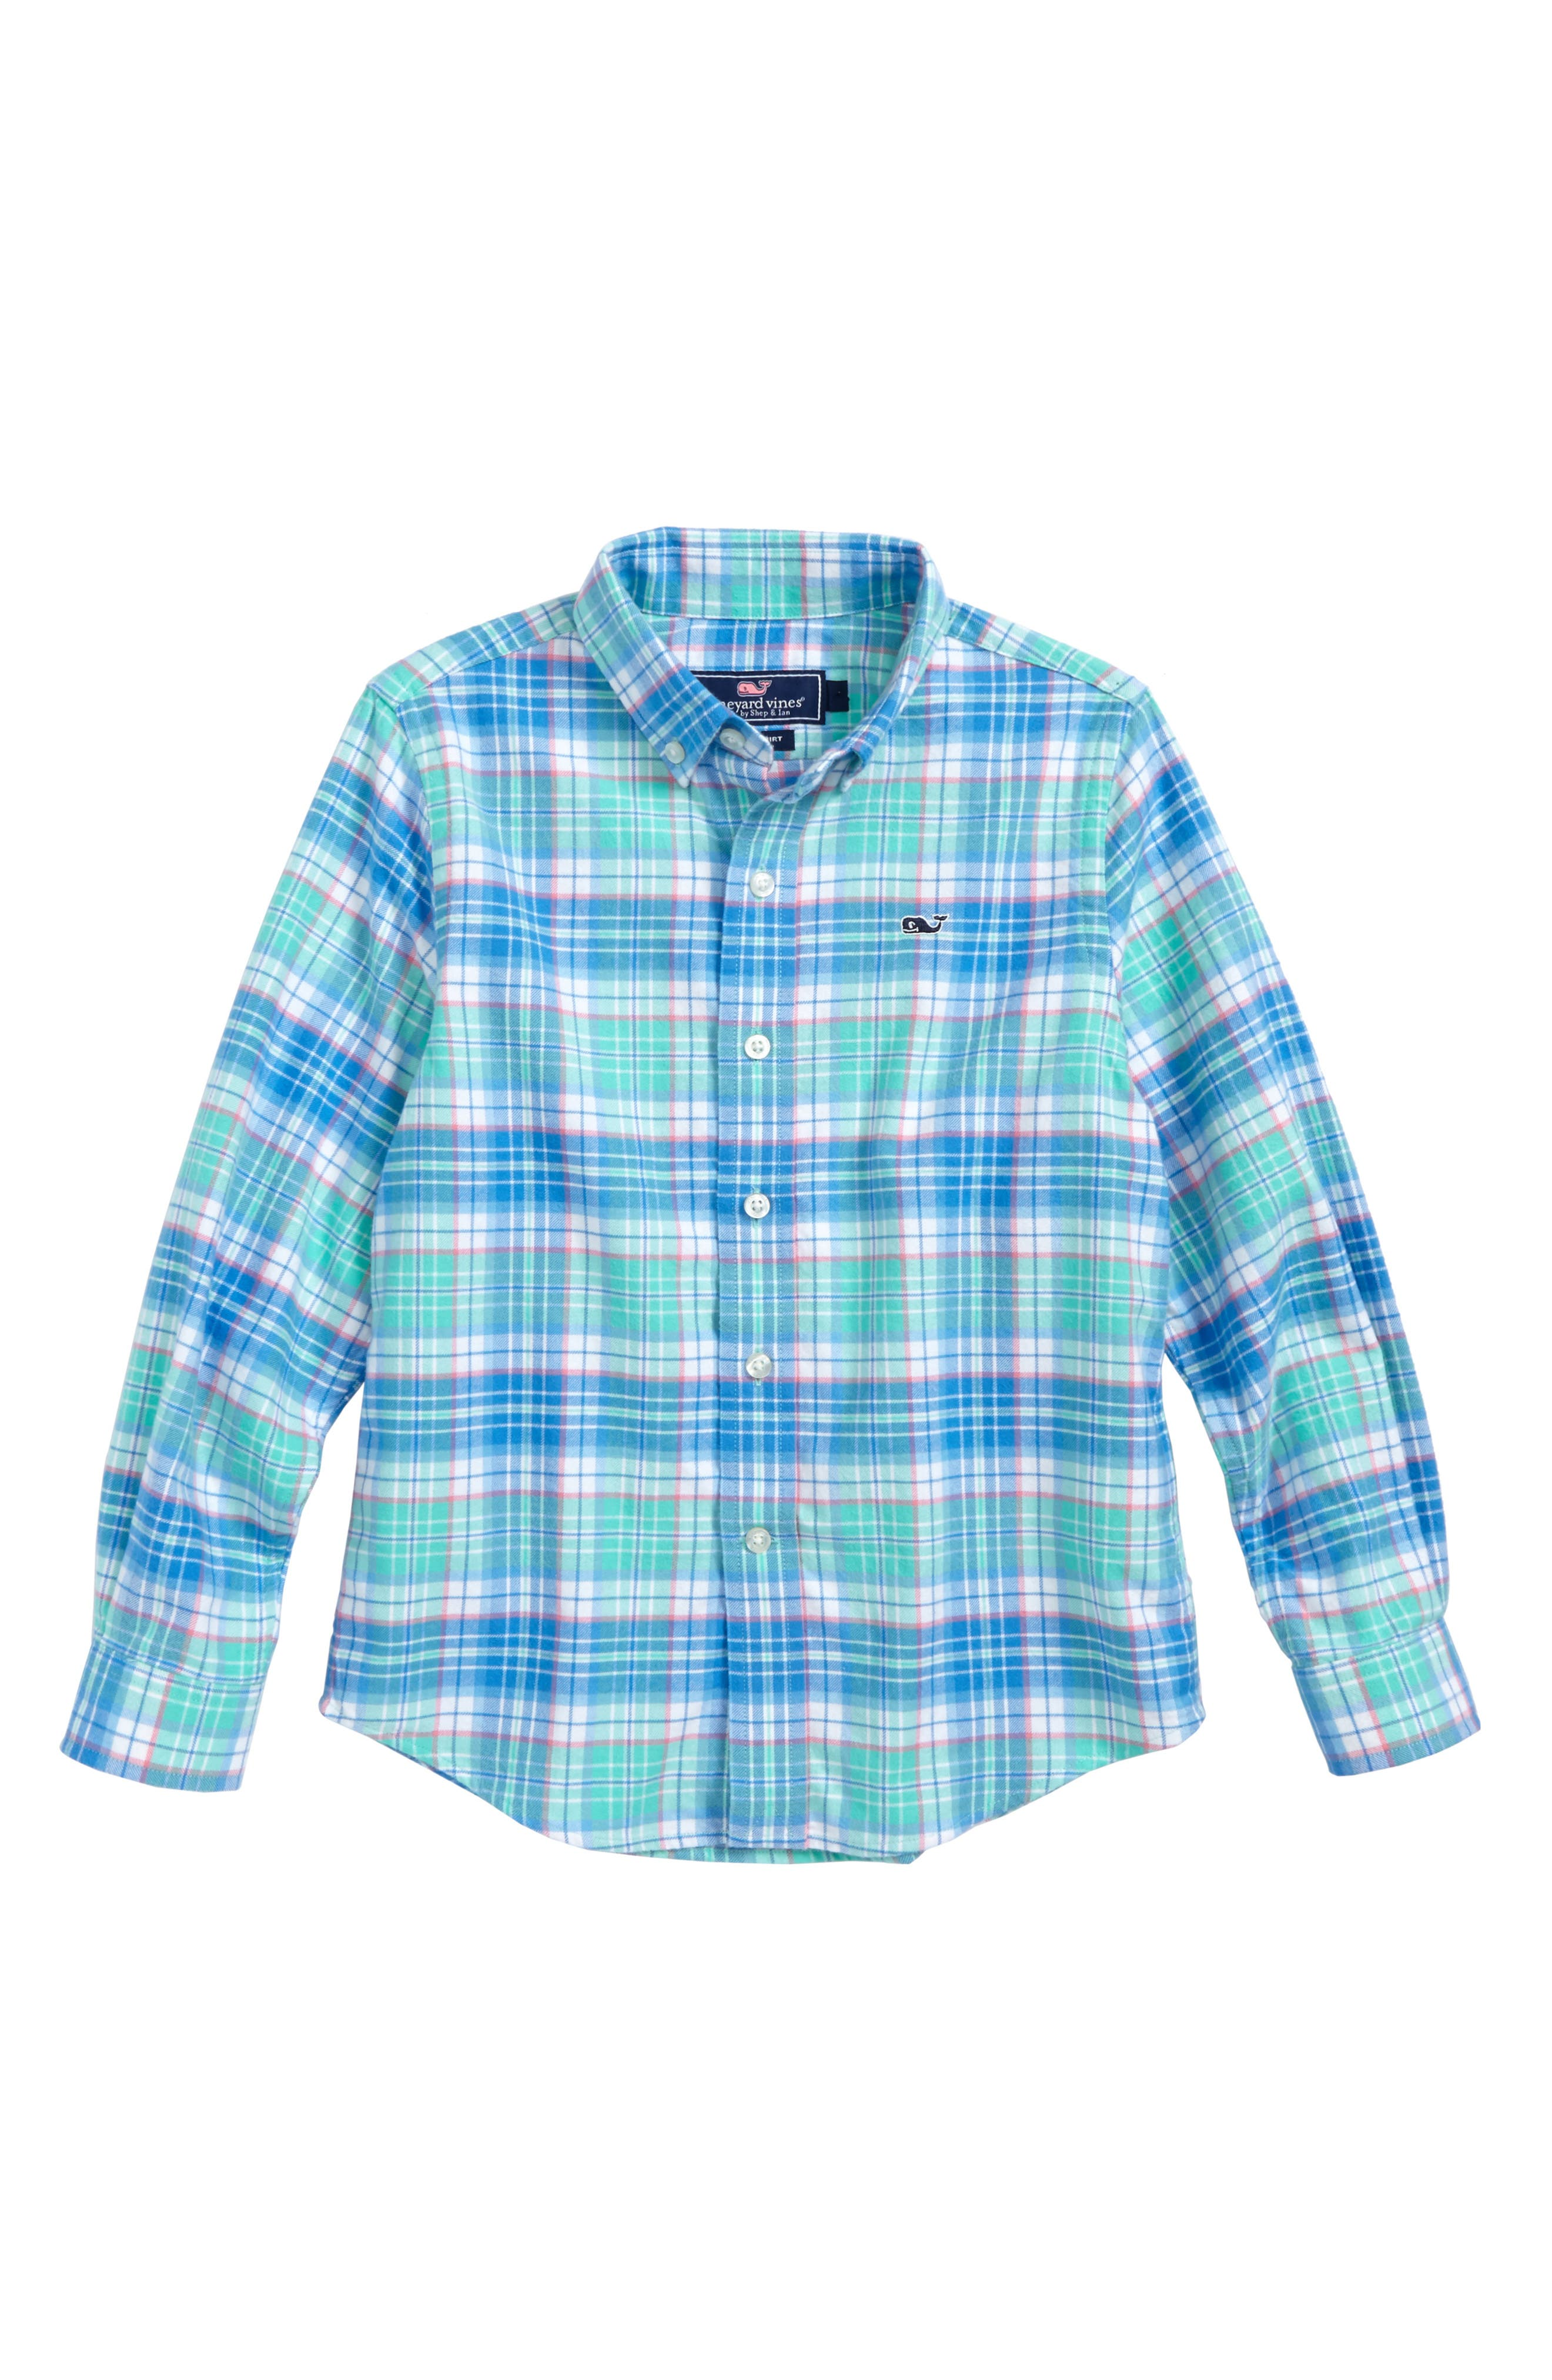 Sandspar Plaid Whale Flannel Shirt,                             Main thumbnail 1, color,